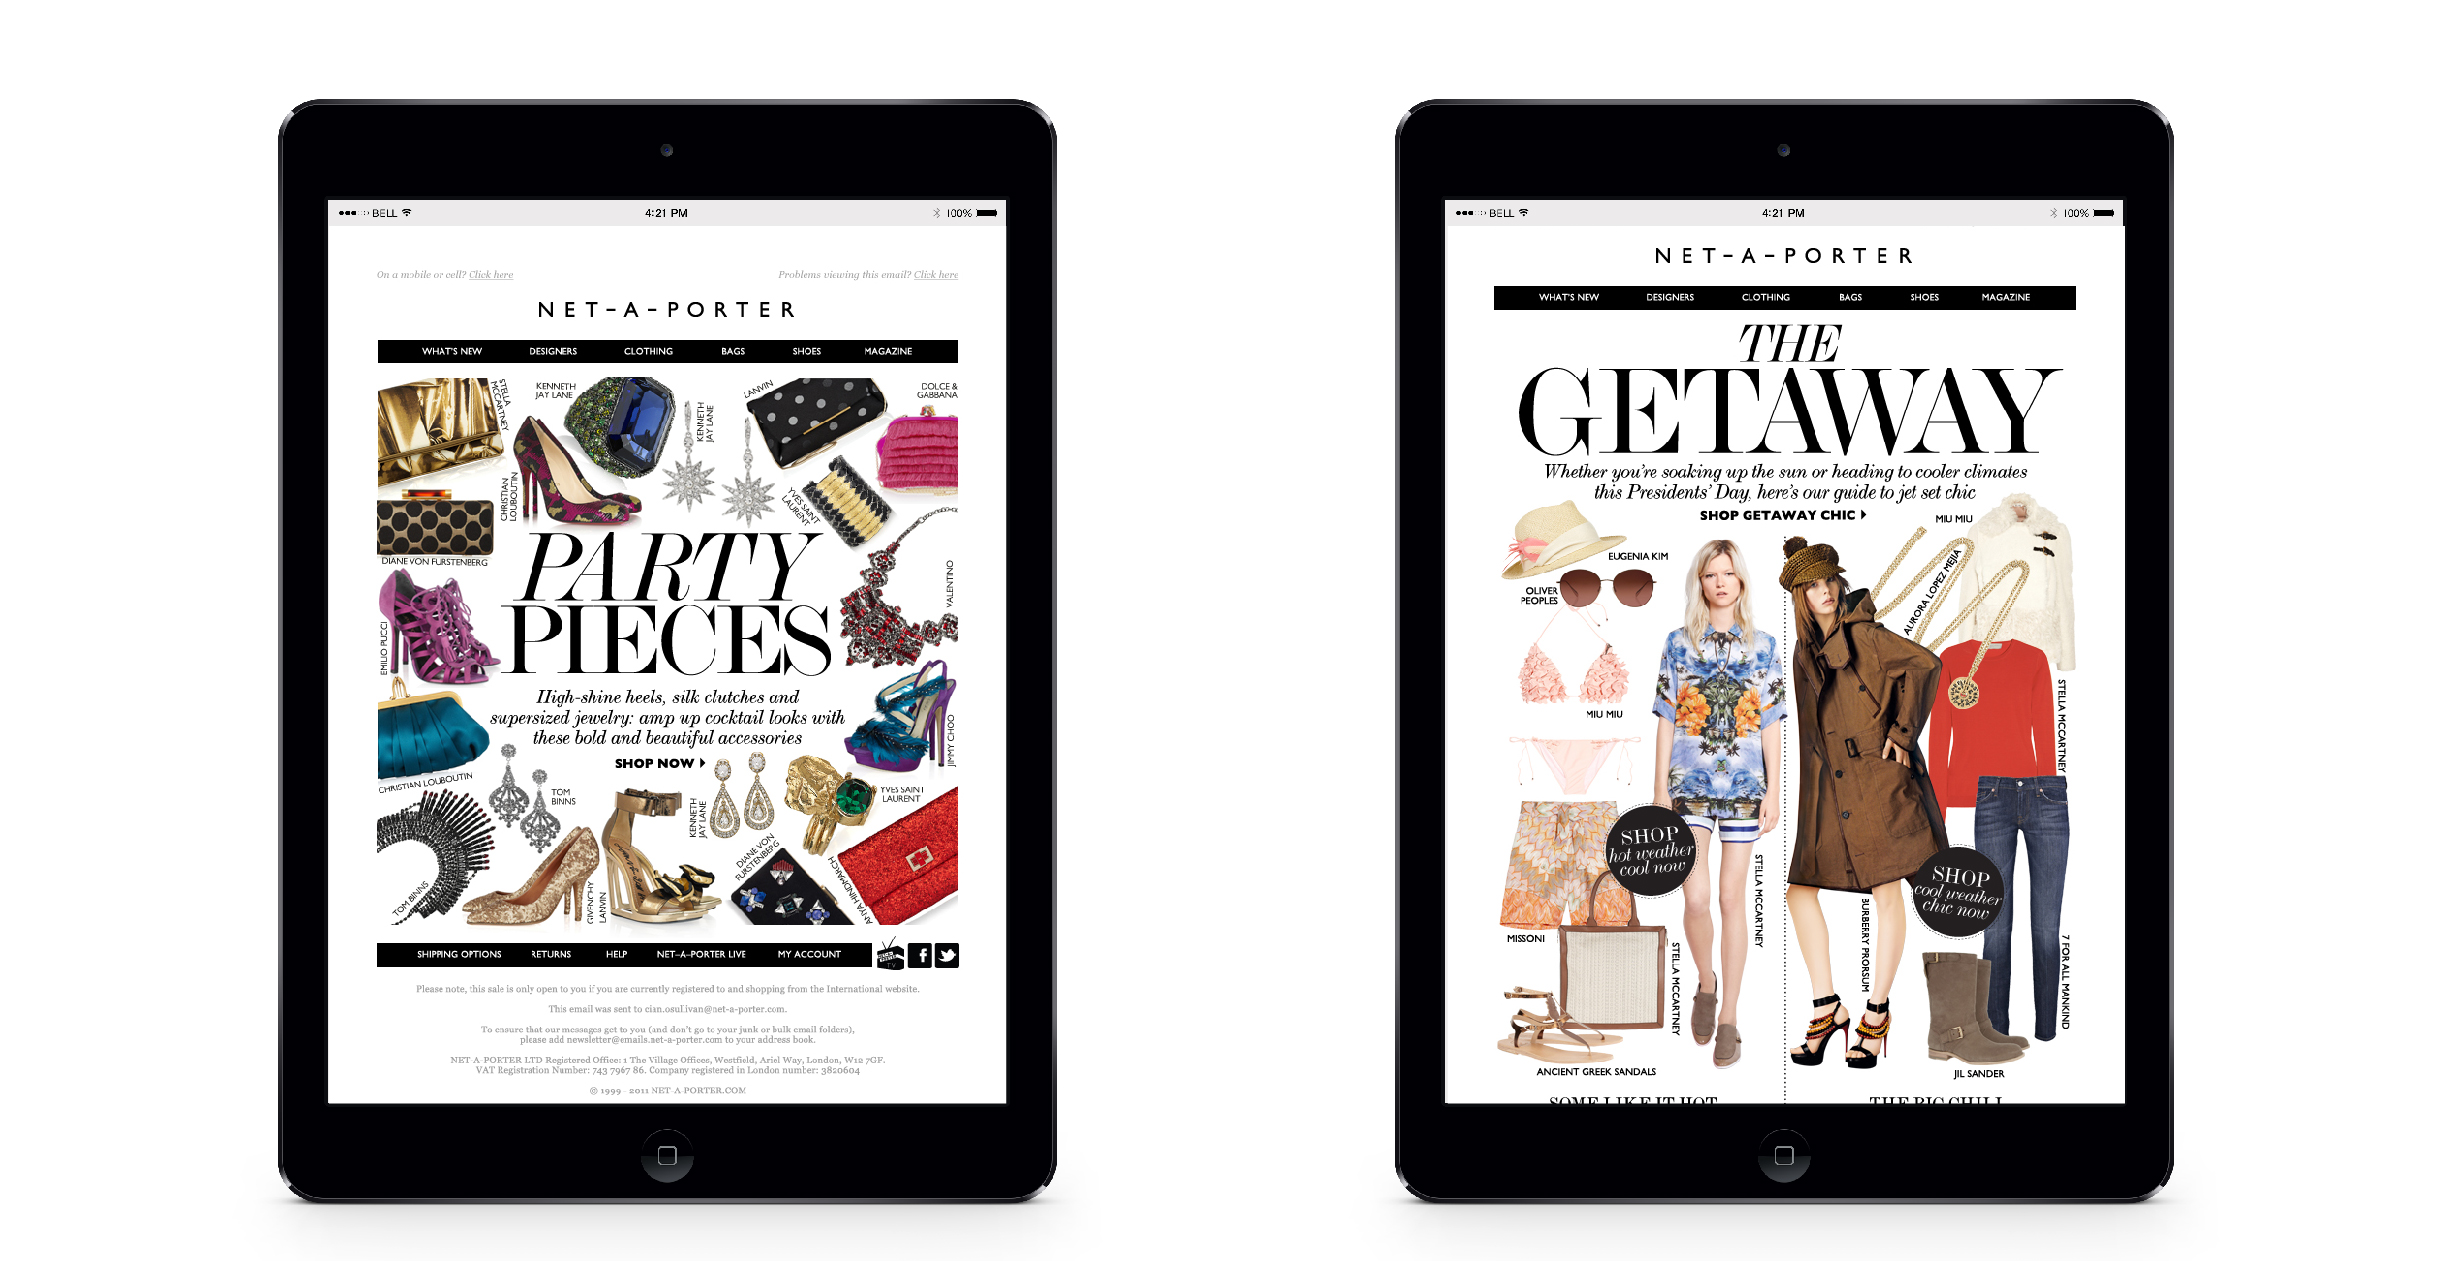 Email designs for luxury fashion e-commerce retailer Net-A-Porter